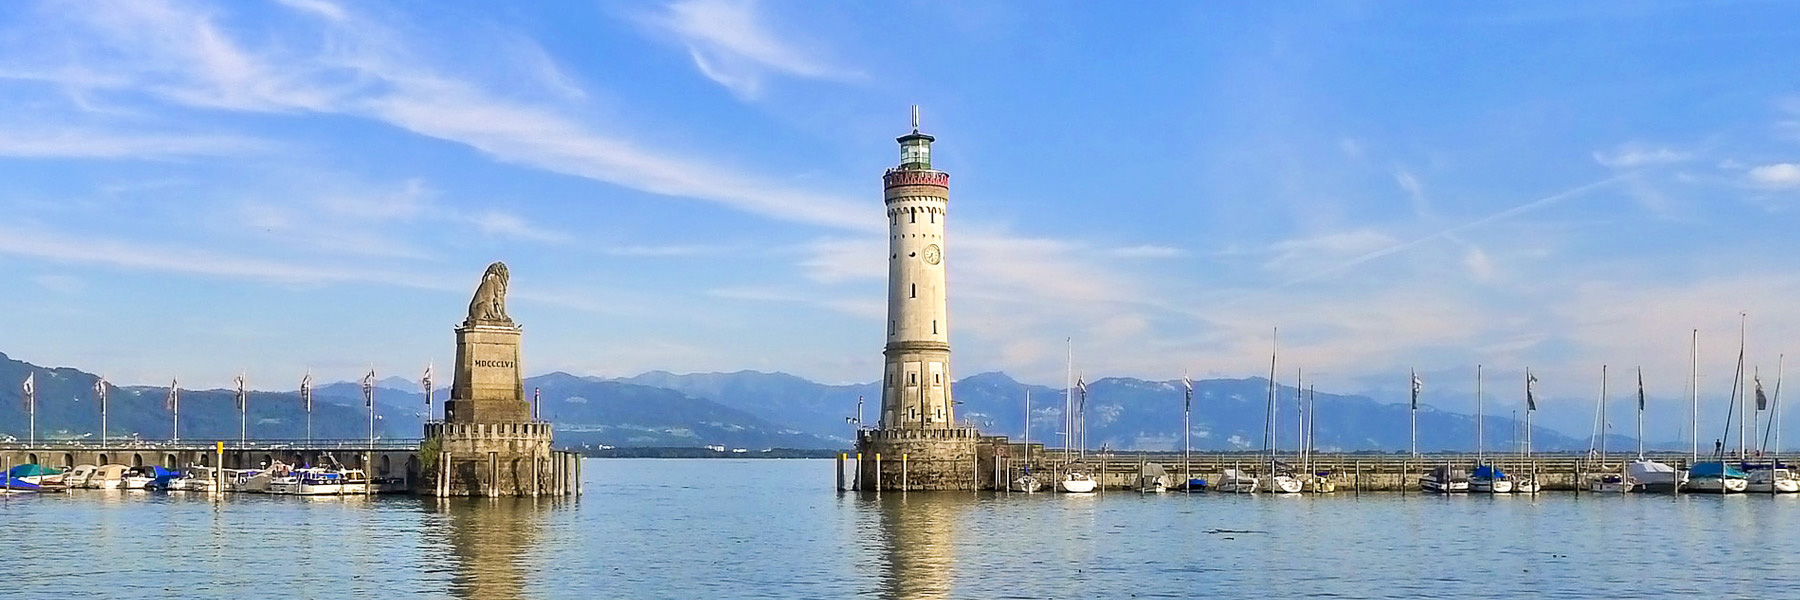 lindau header